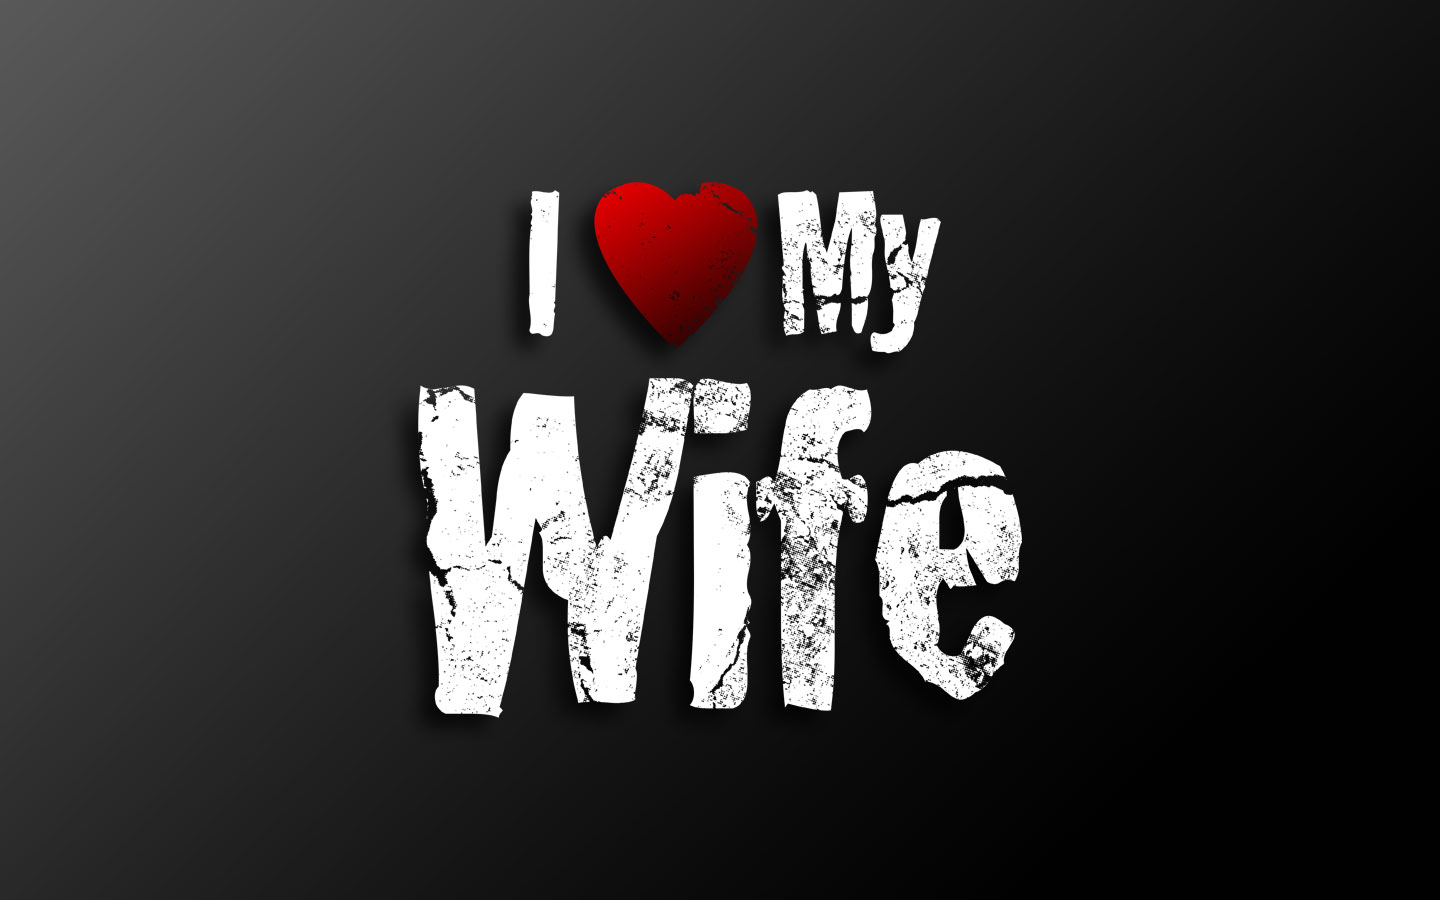 Love Wallpaper Of Husband And Wife : I Love My Wife Wallpaper - christian Wallpapers and Backgrounds